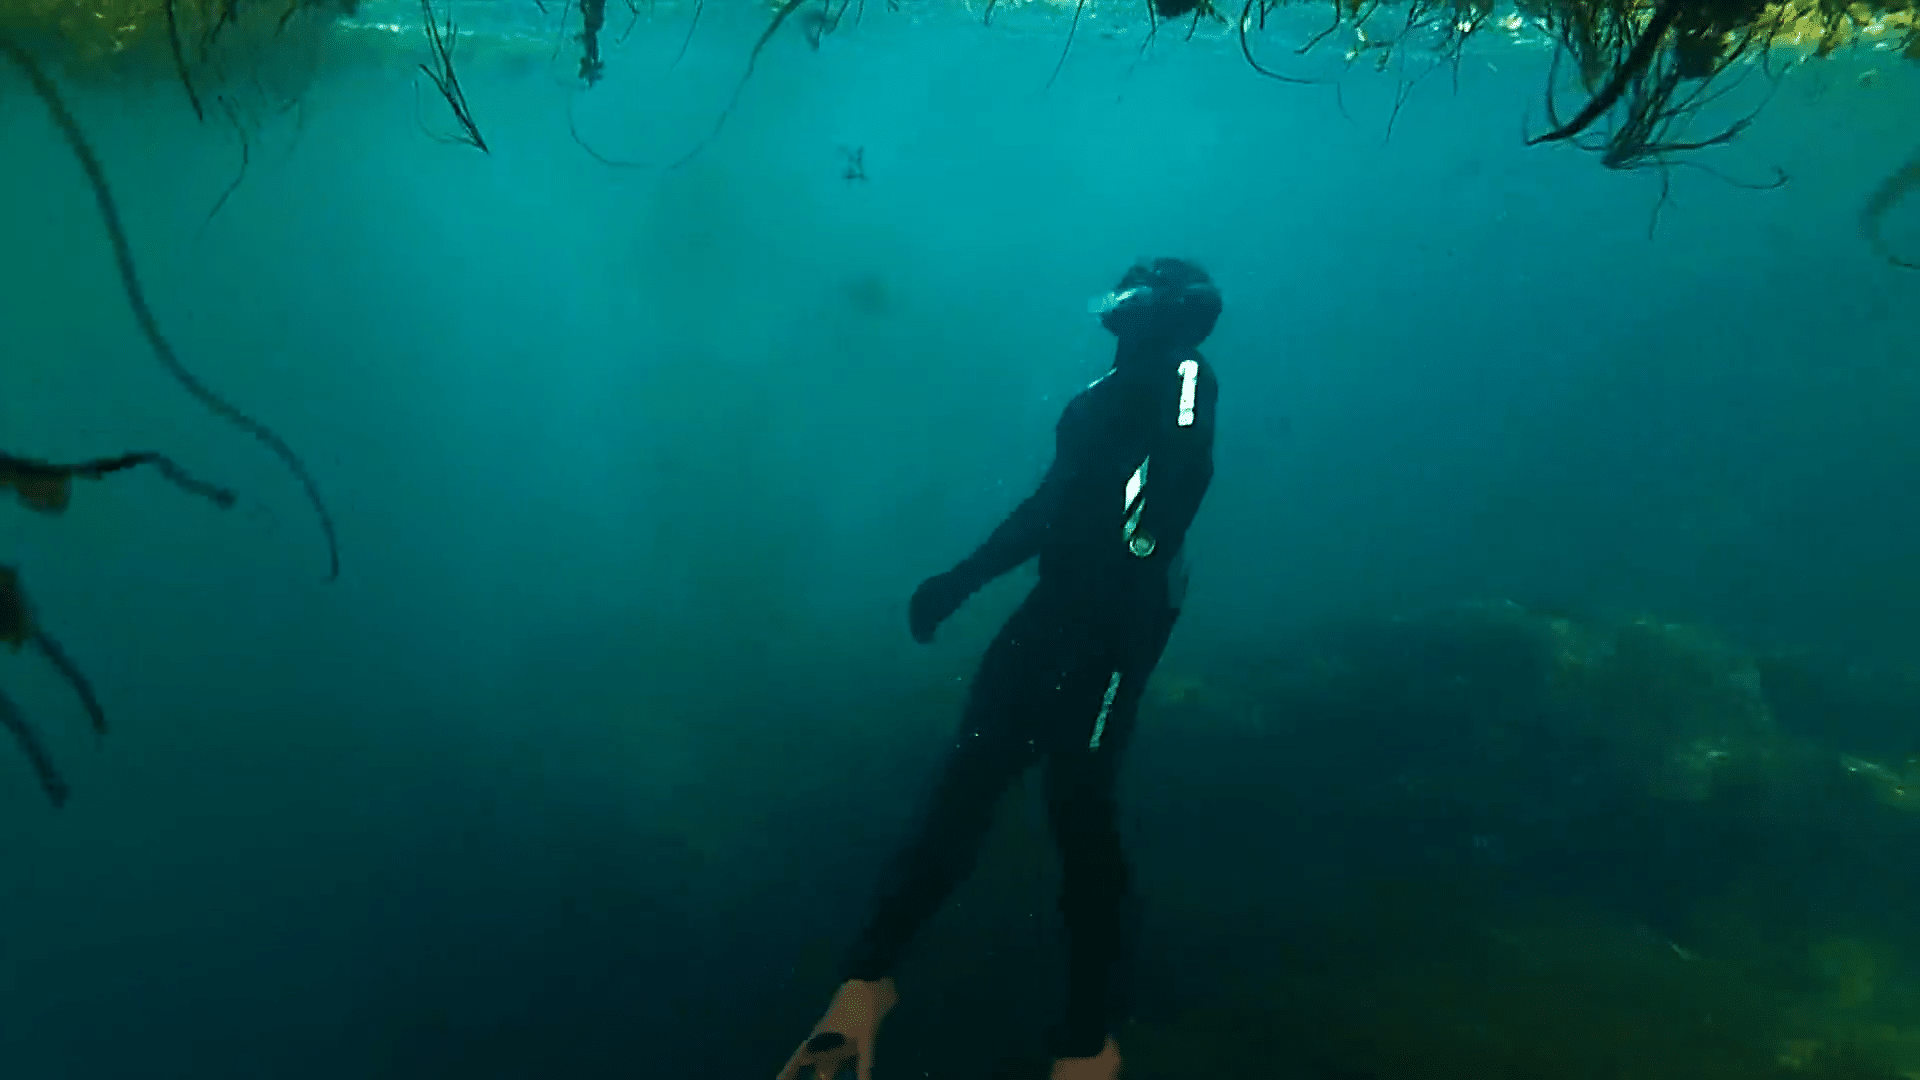 A new freediving club has formed in the Canadian province of Nova Scotia.